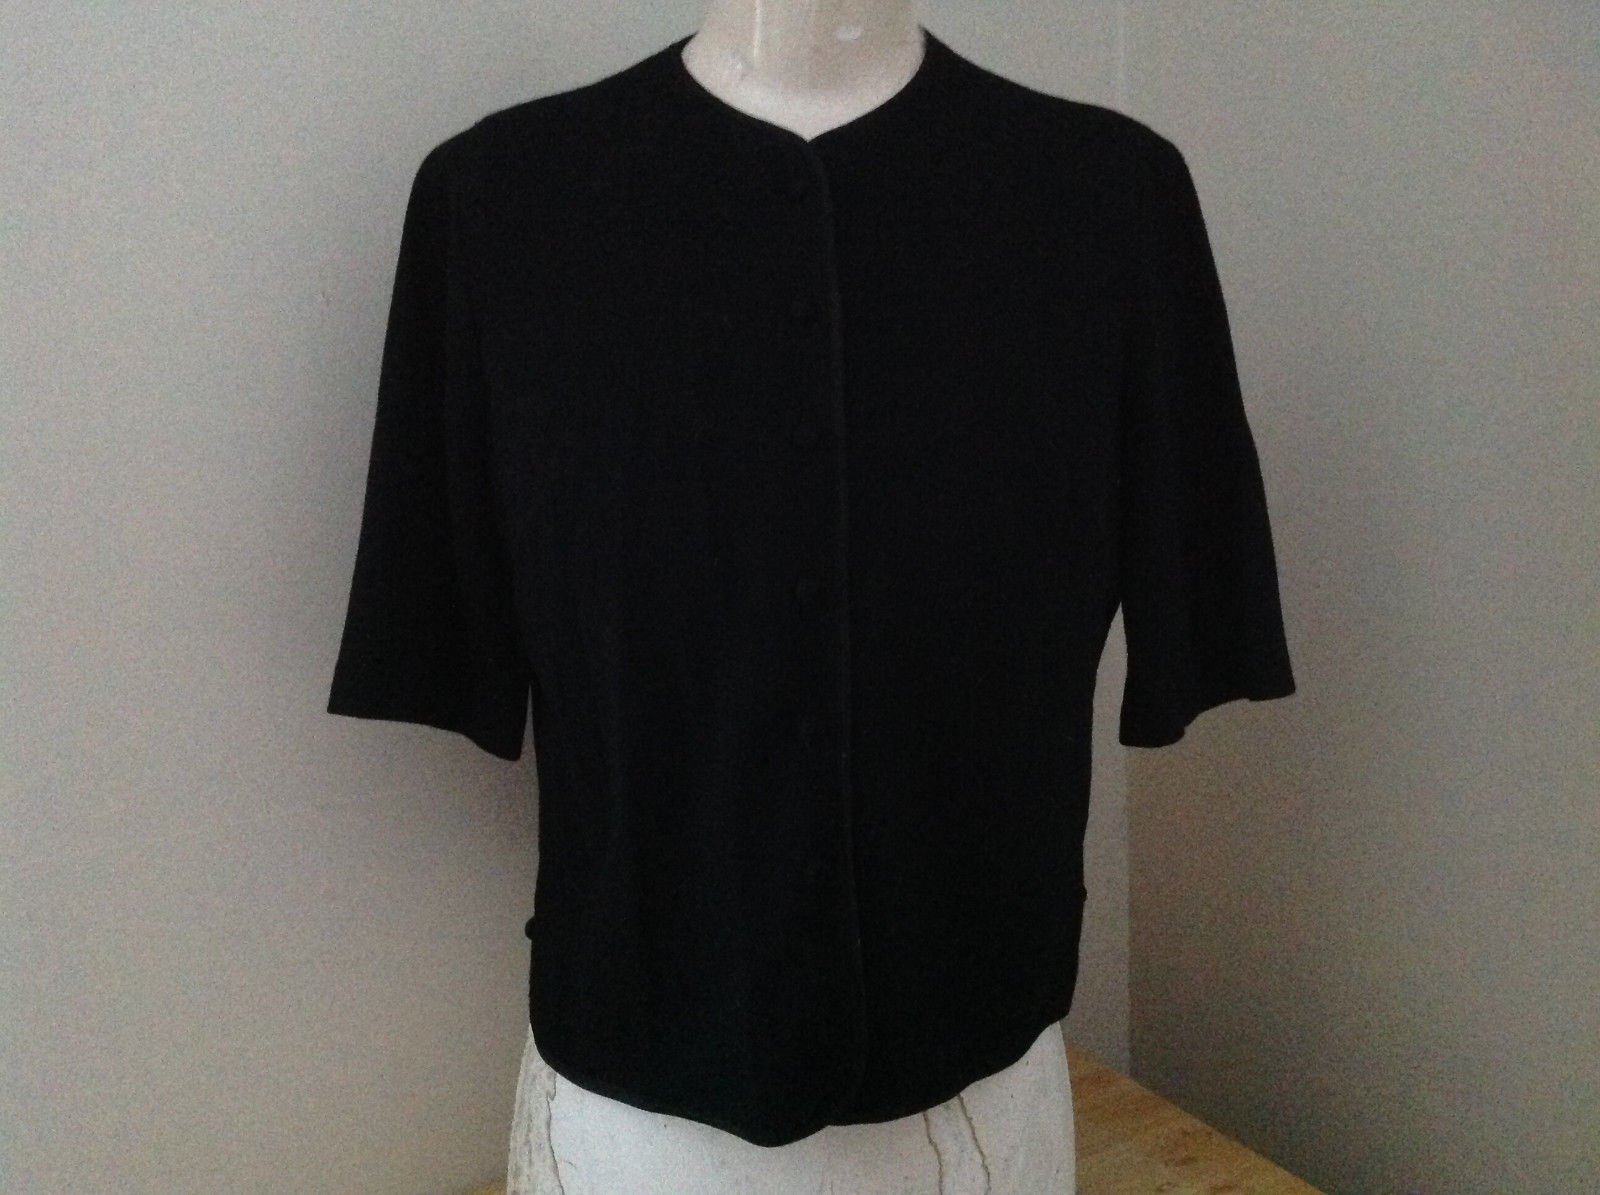 Lord and Taylor Black Short Sleeve Button Up Shirt Size Small